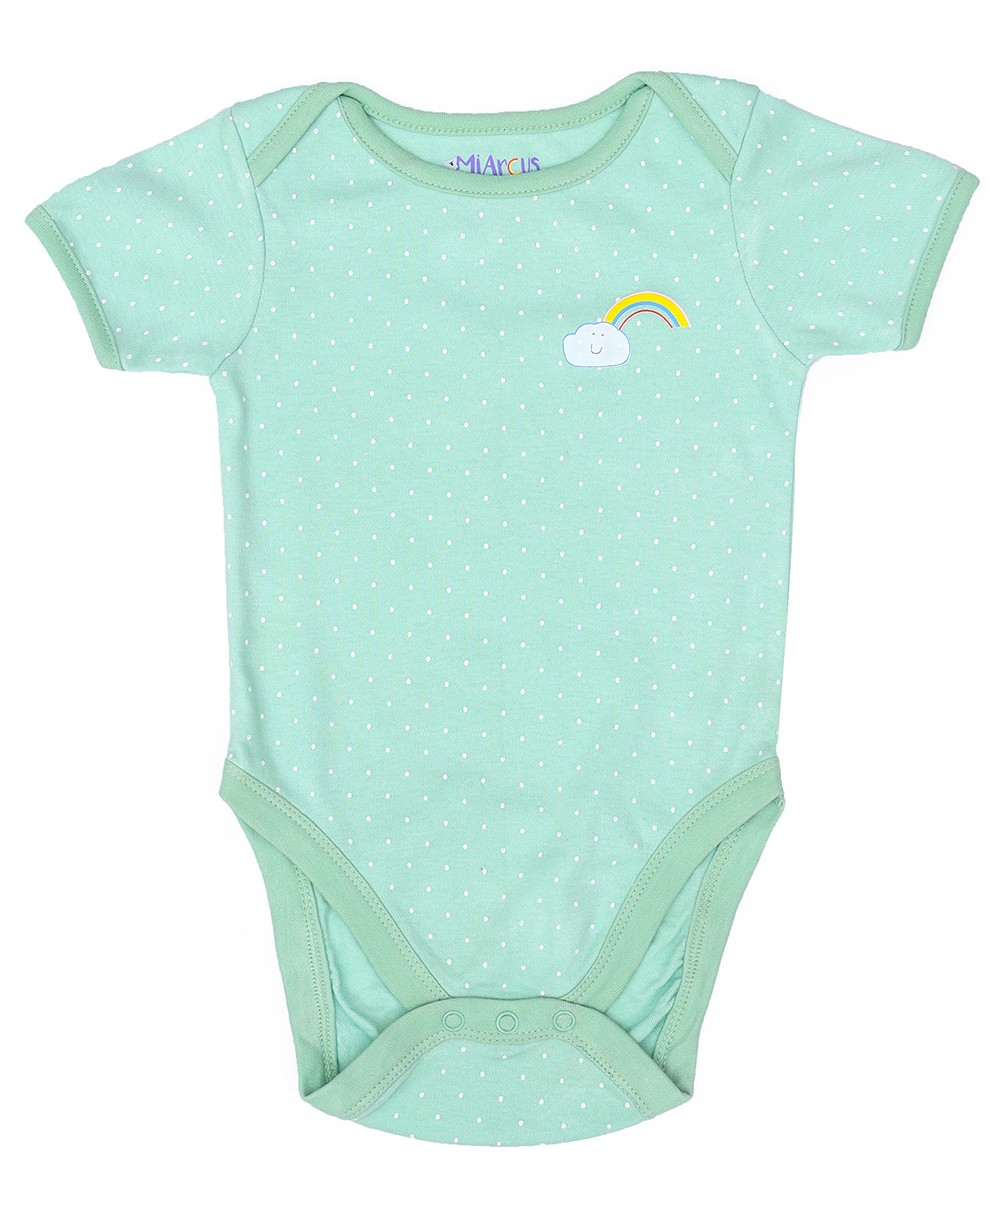 Tiny Tog Knitted Romper - Arcus (Pack of 2)